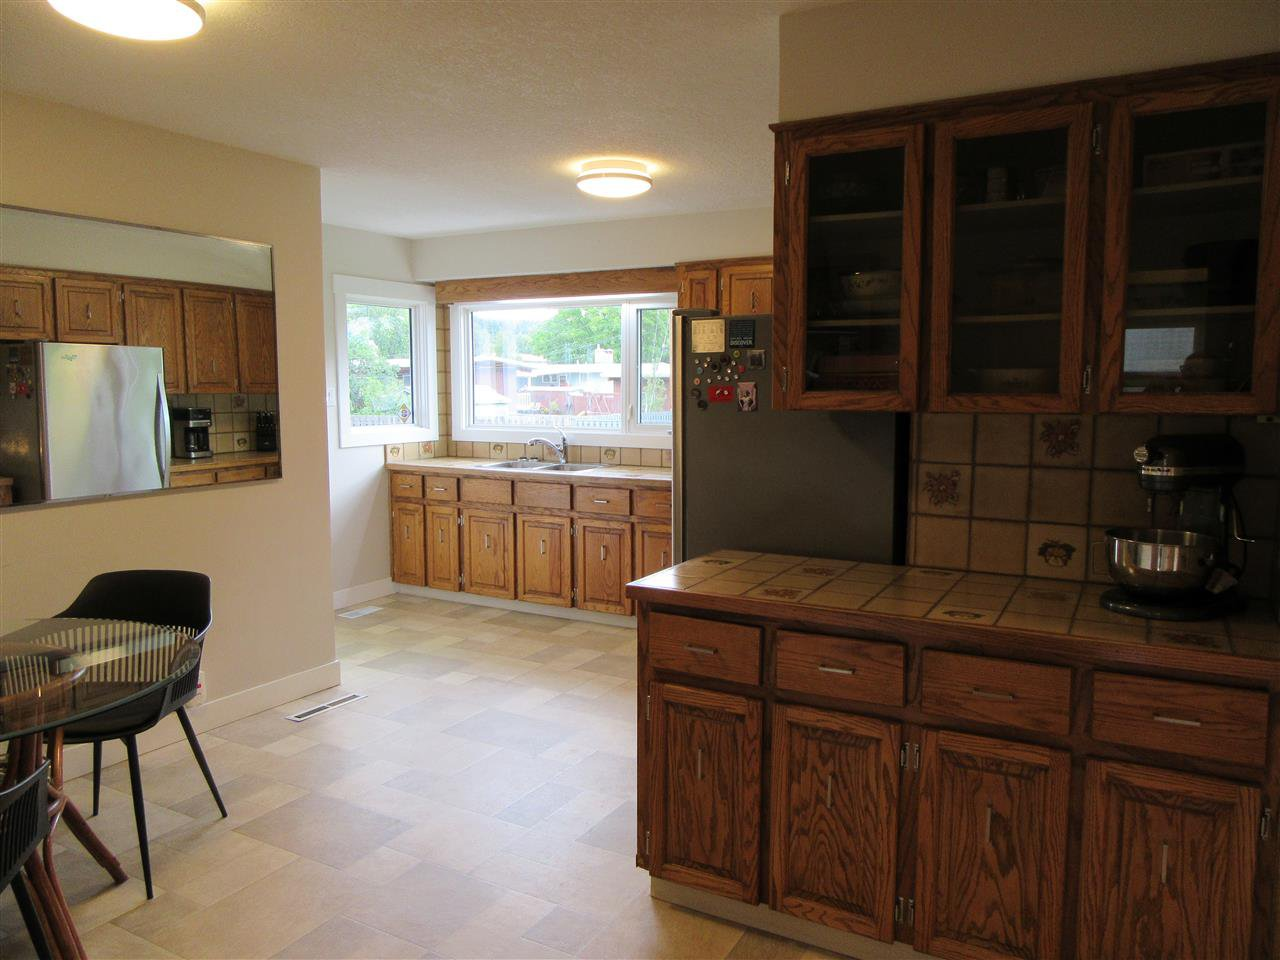 """Photo 30: Photos: 121 FREEMAN Street in Prince George: Nechako View House for sale in """"NECHAKO"""" (PG City Central (Zone 72))  : MLS®# R2493268"""